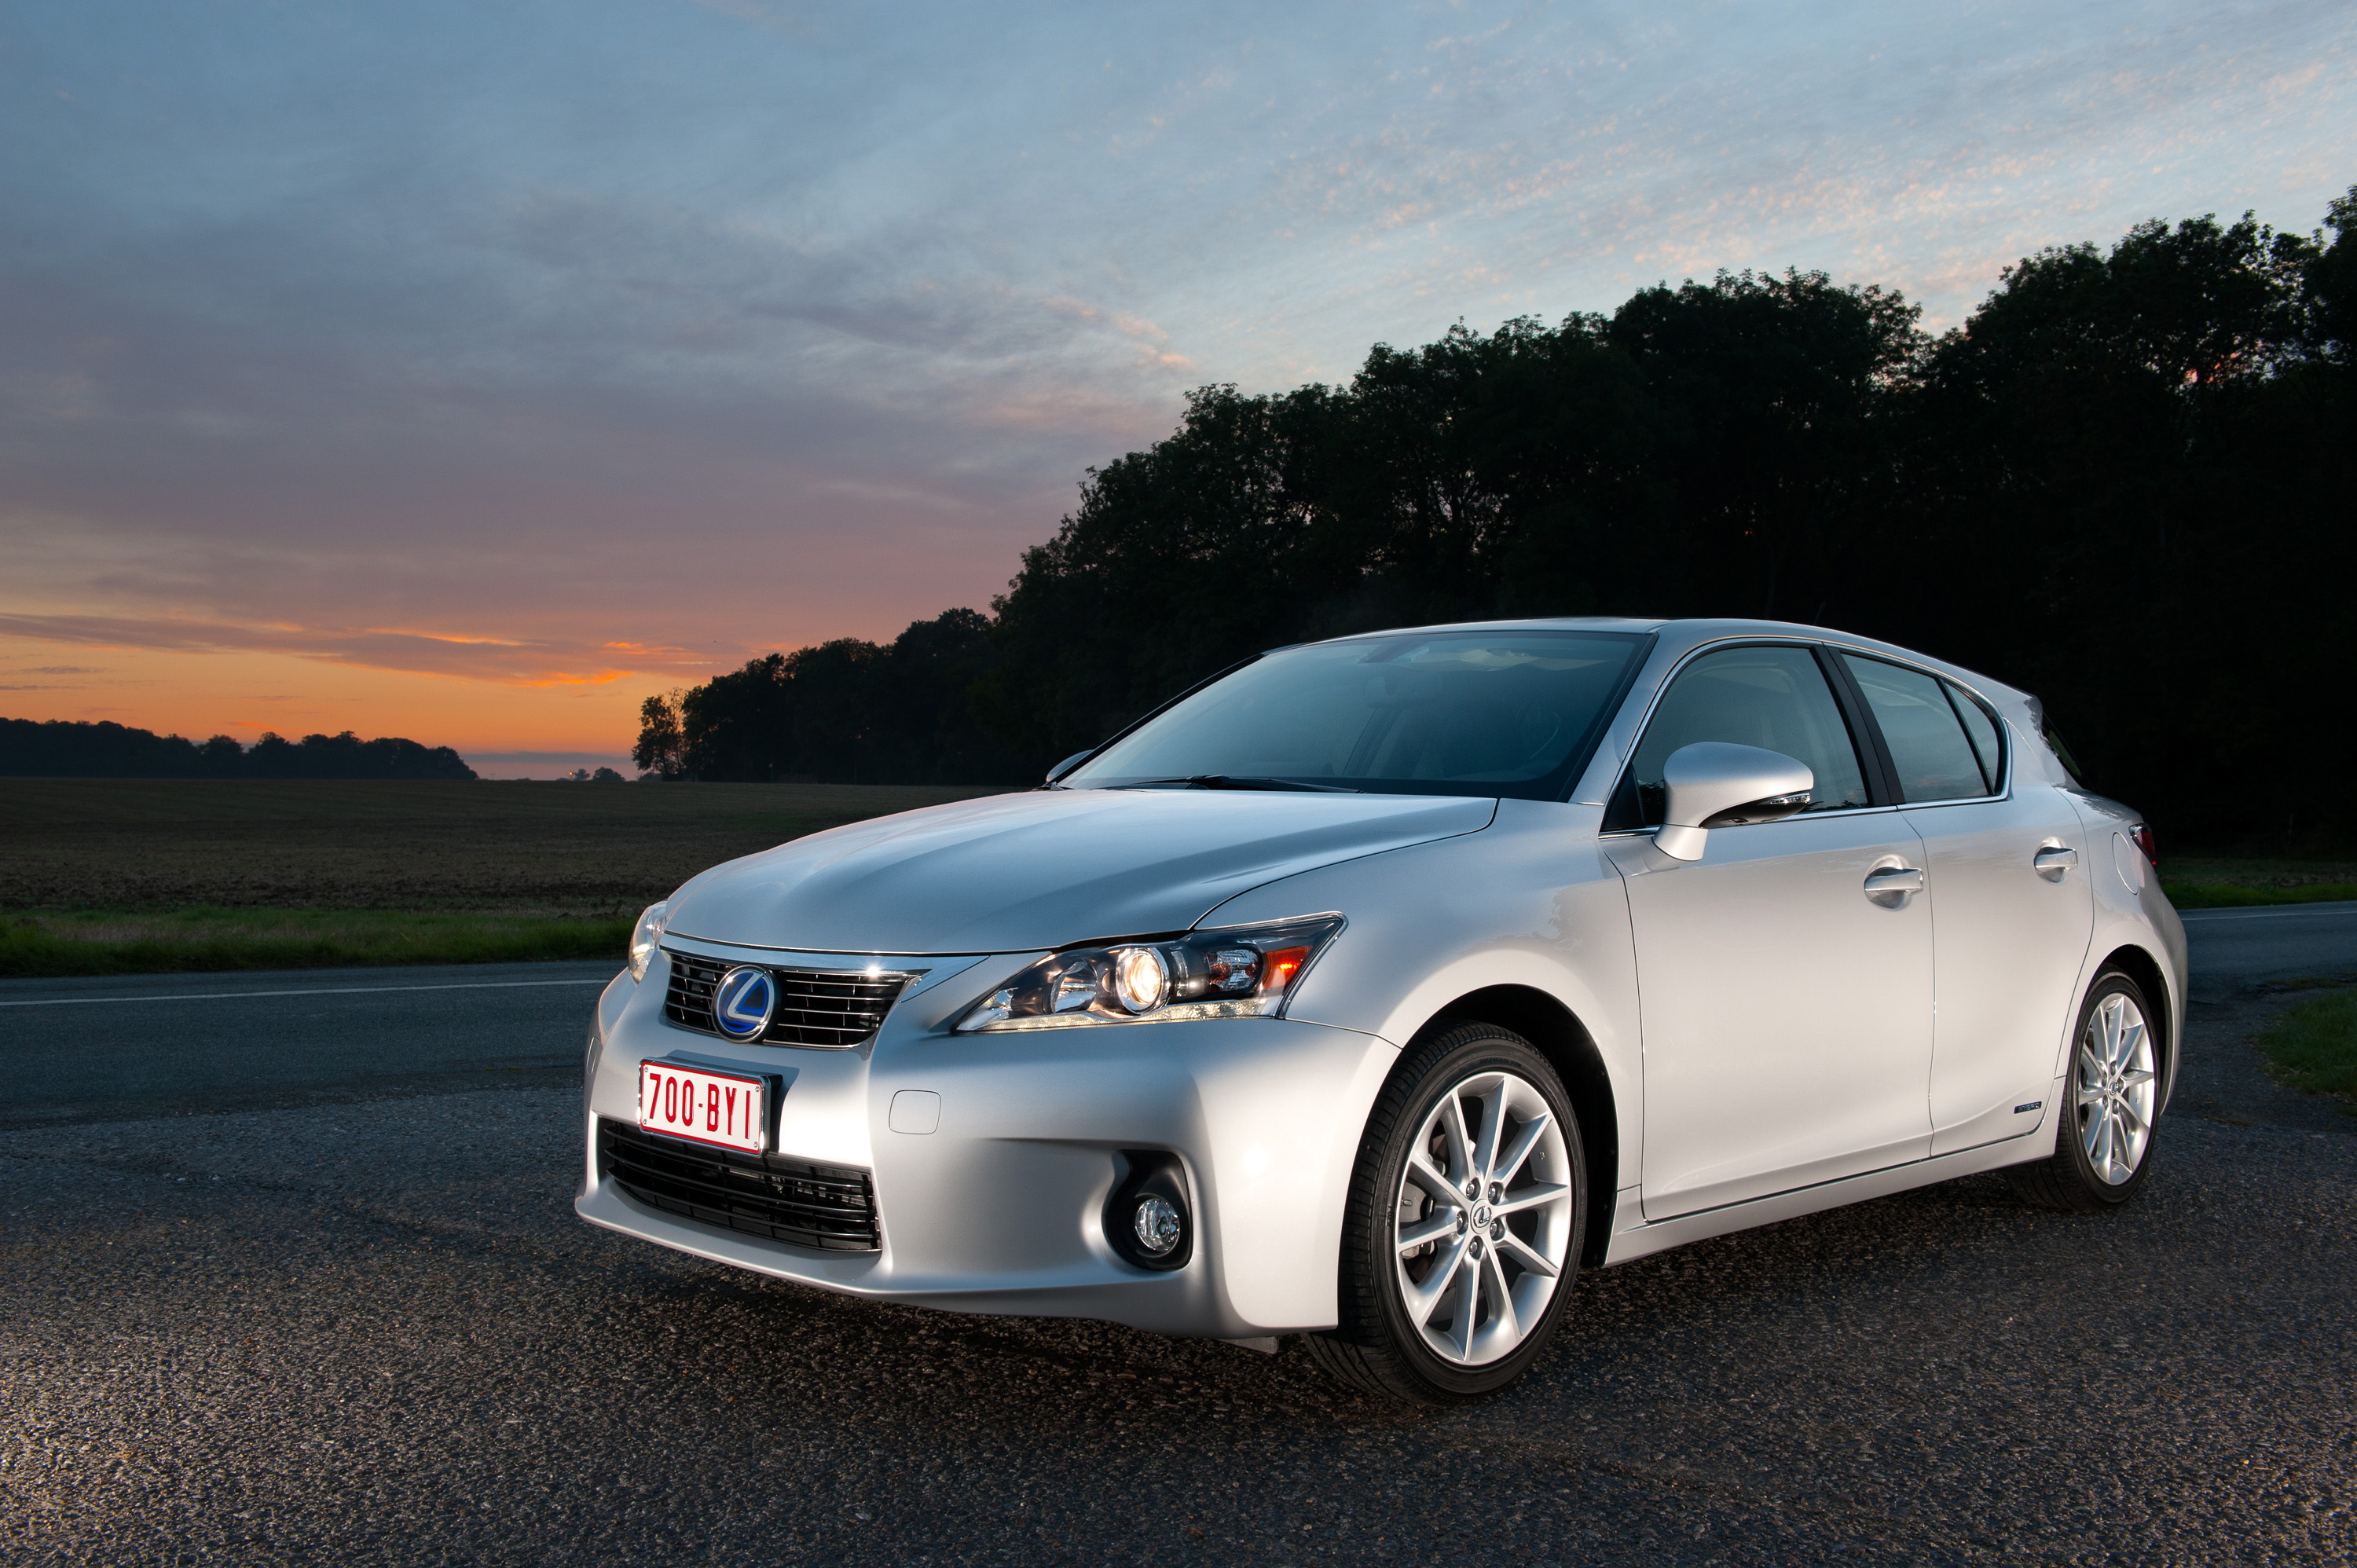 introduction model club here call post amp welcome to and thread roll ct owner forums image member lexus present